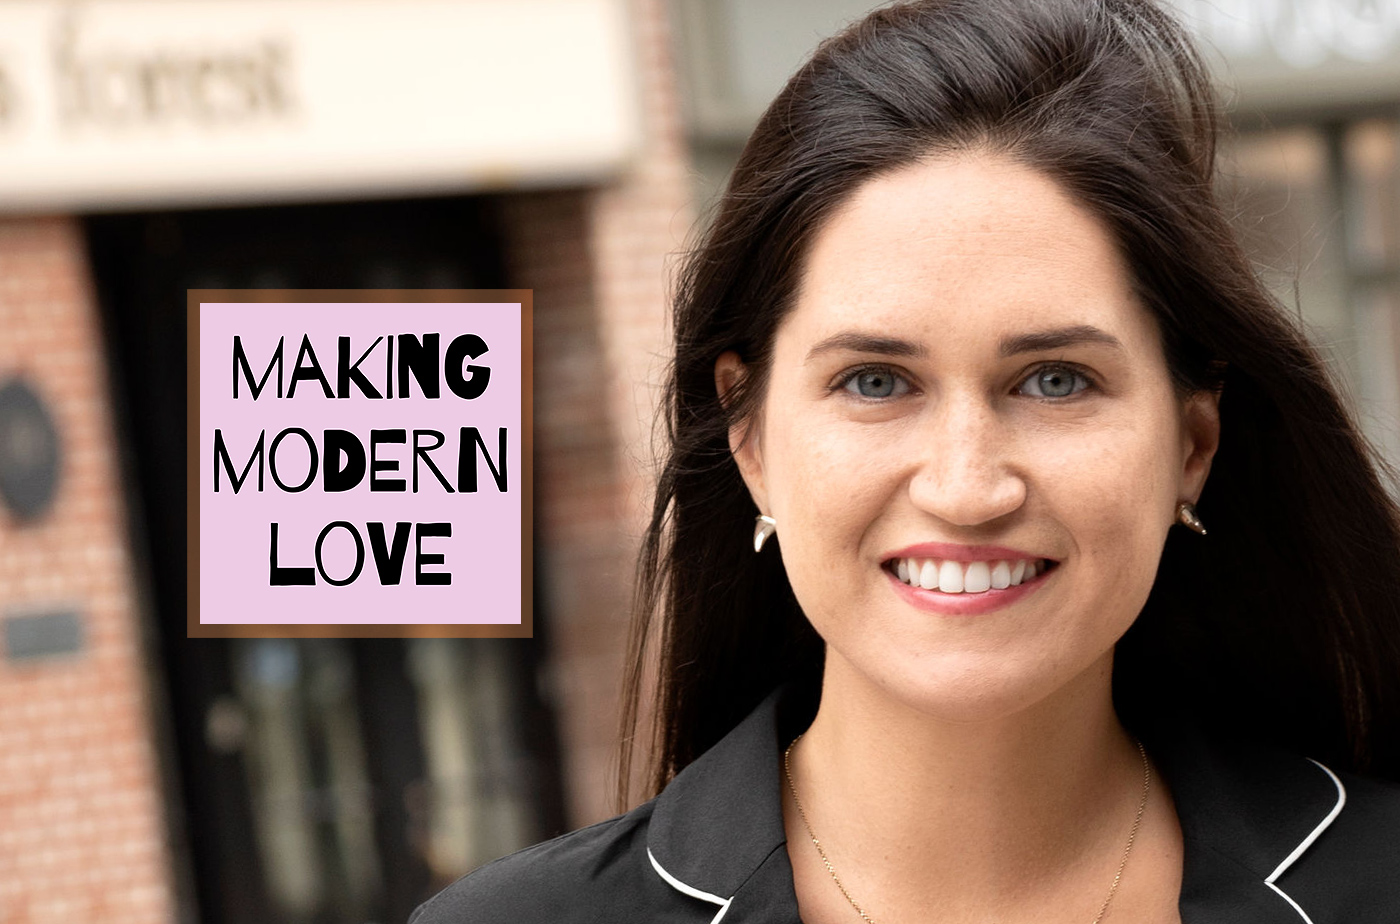 Catapult online classes: Jessica Ciencin Henriquez, 4-Week Online Nonfiction Workshop: Making Modern Love, Nonfiction, Workshop